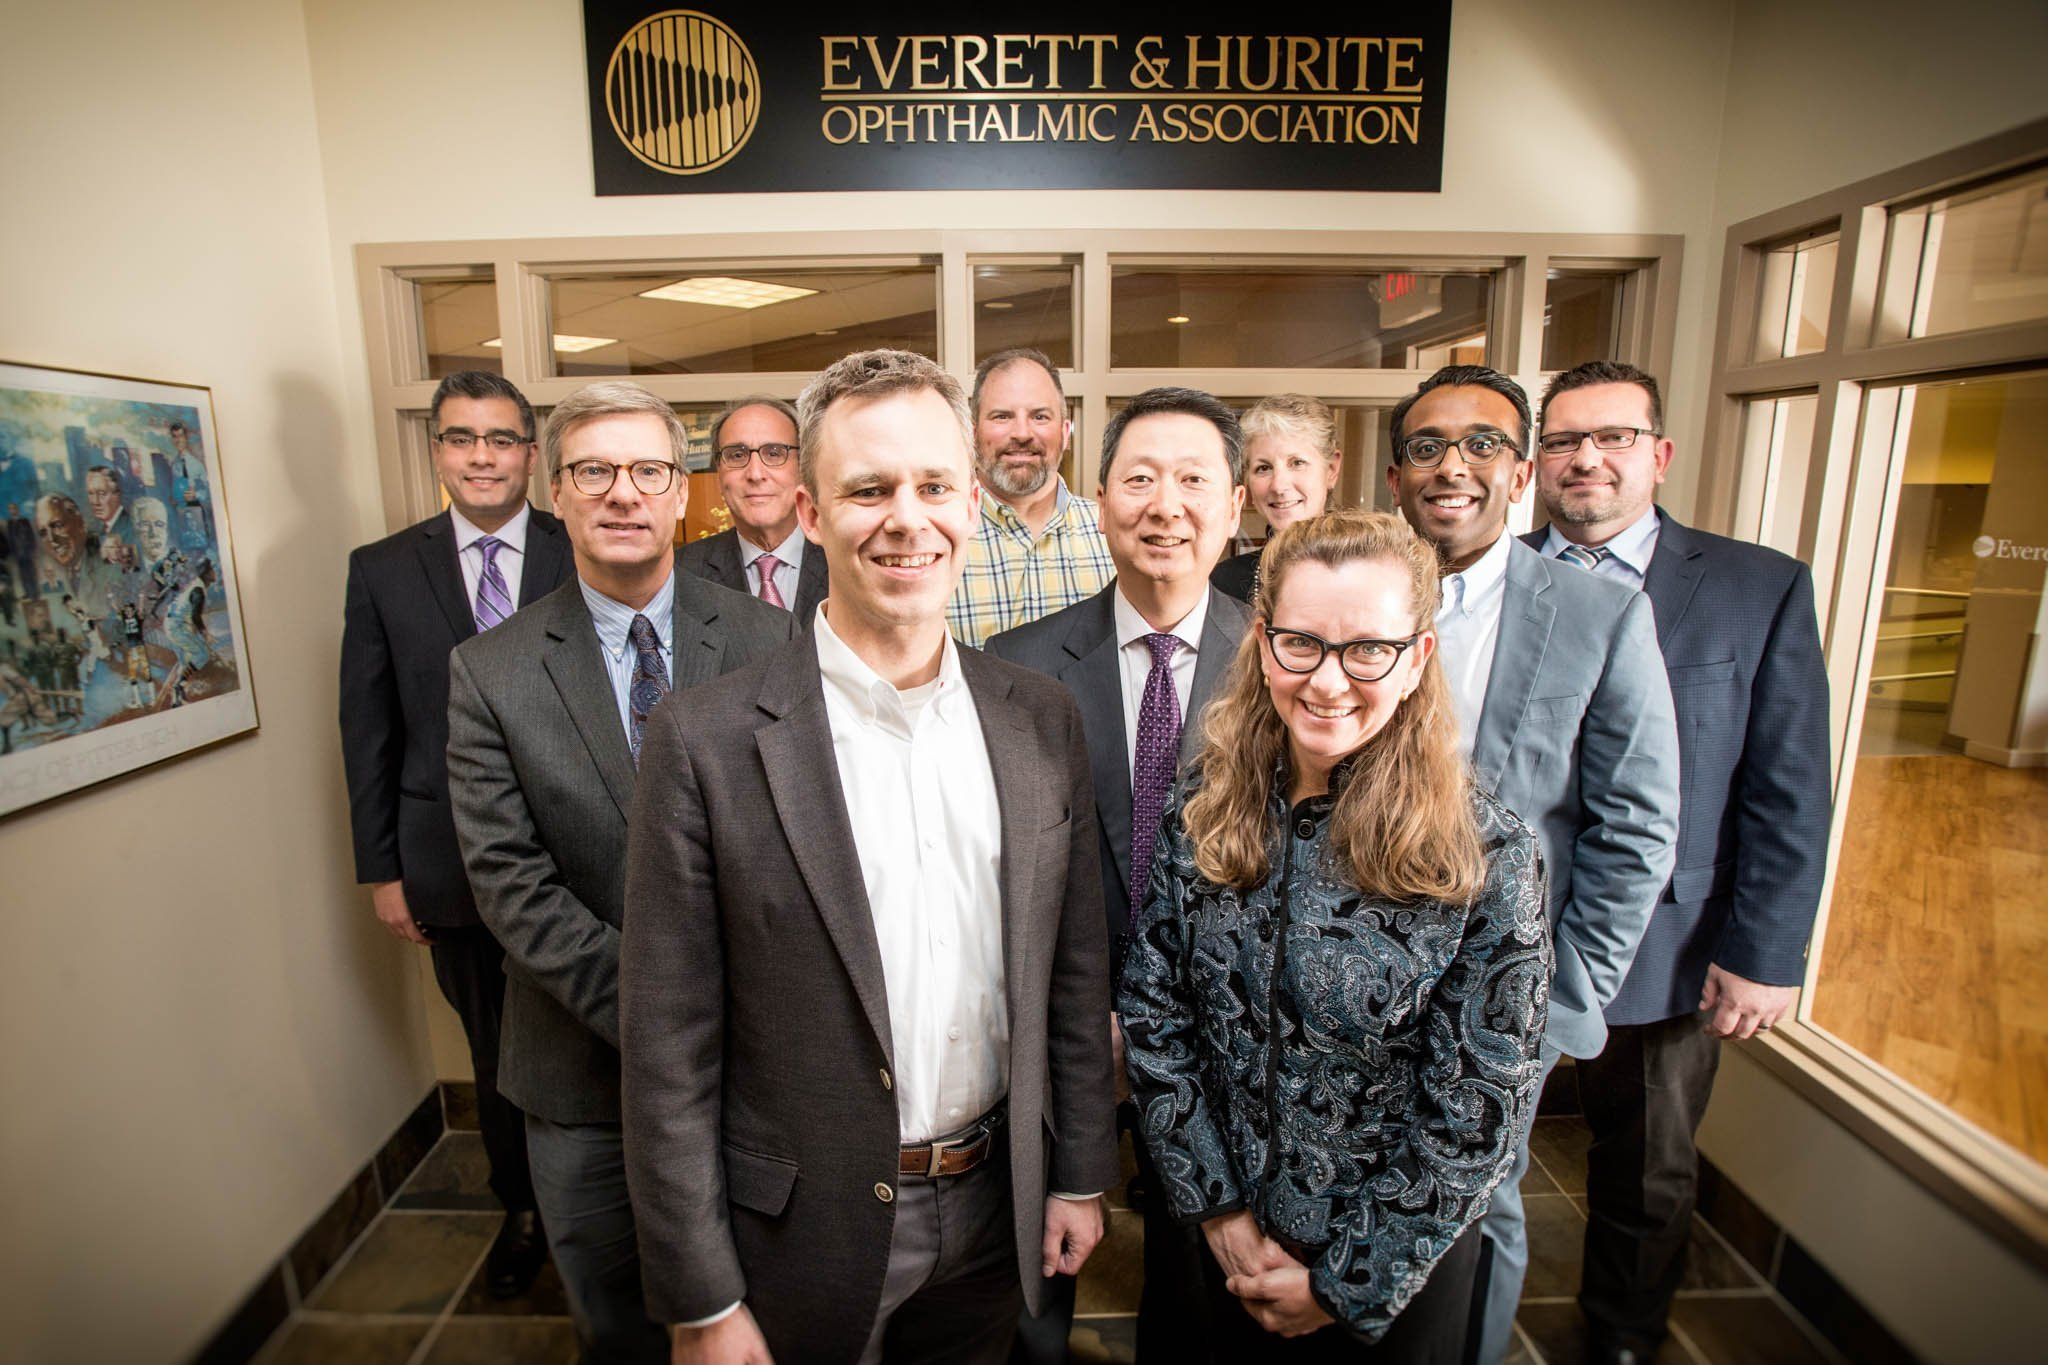 Everett & Hurite Ophthalmic Association image 0